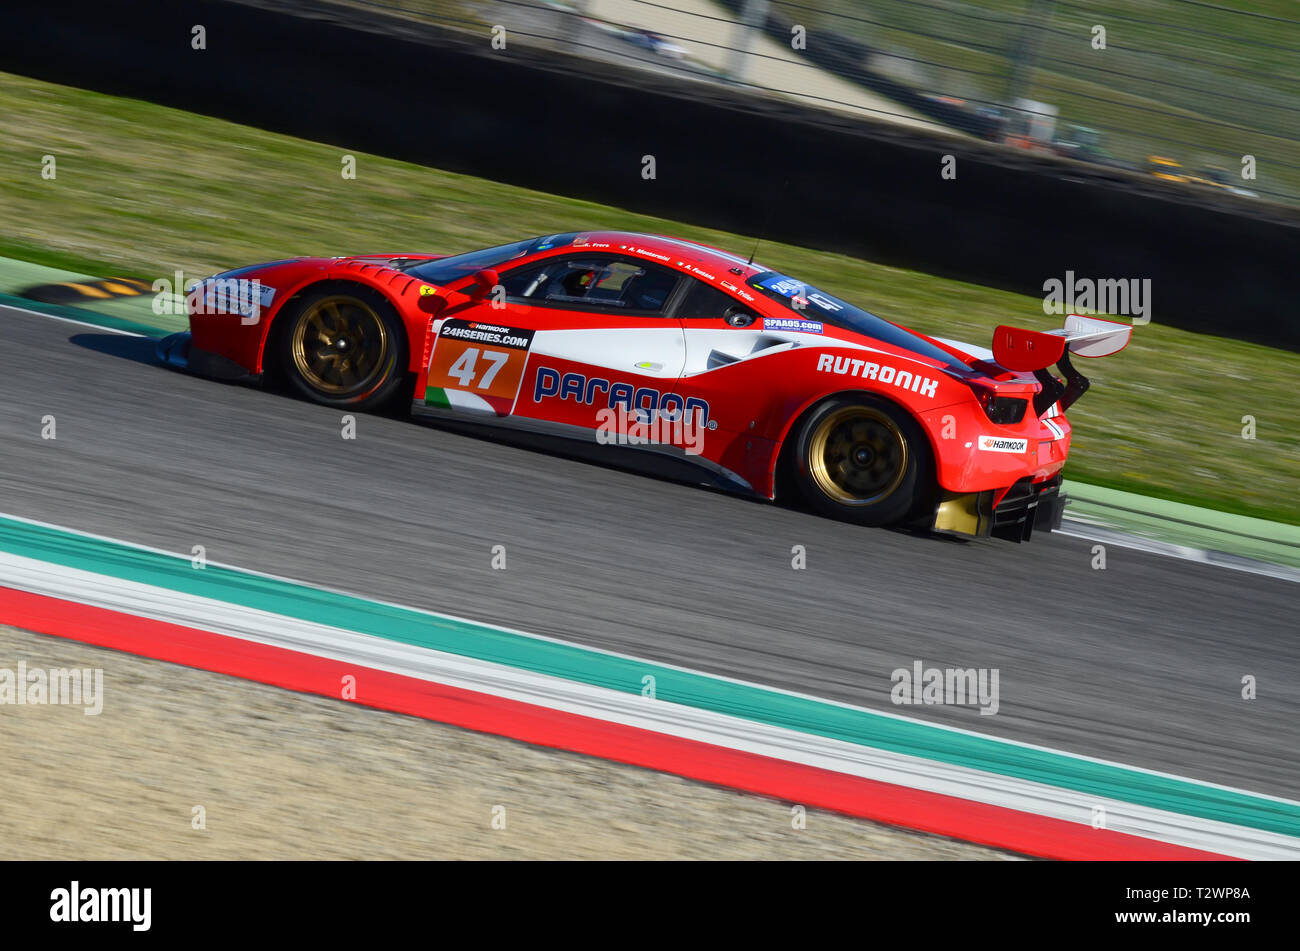 Italy - 29 March, 2019: Ferrari 488 GT3 of Rinaldi Racing Team driven by Andrea Montermini/Andrea Fontana/Wolfgang Triller in action at 12h Hankook. Stock Photo